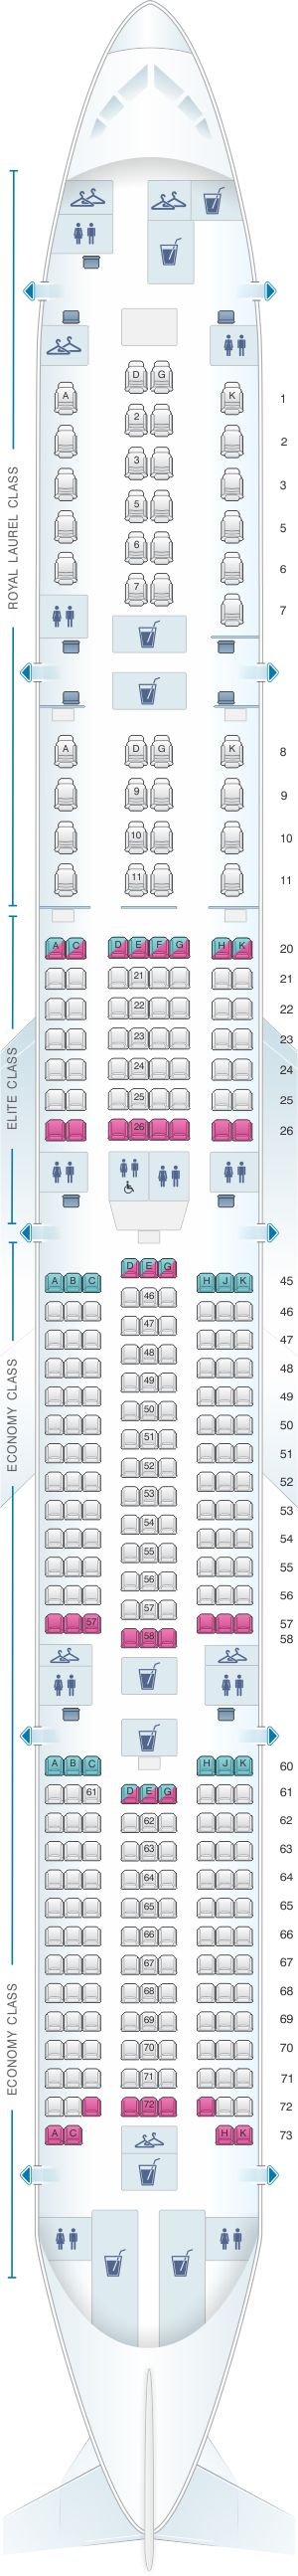 Seat Map EVA Air Boeing B777 300ER 333PAX